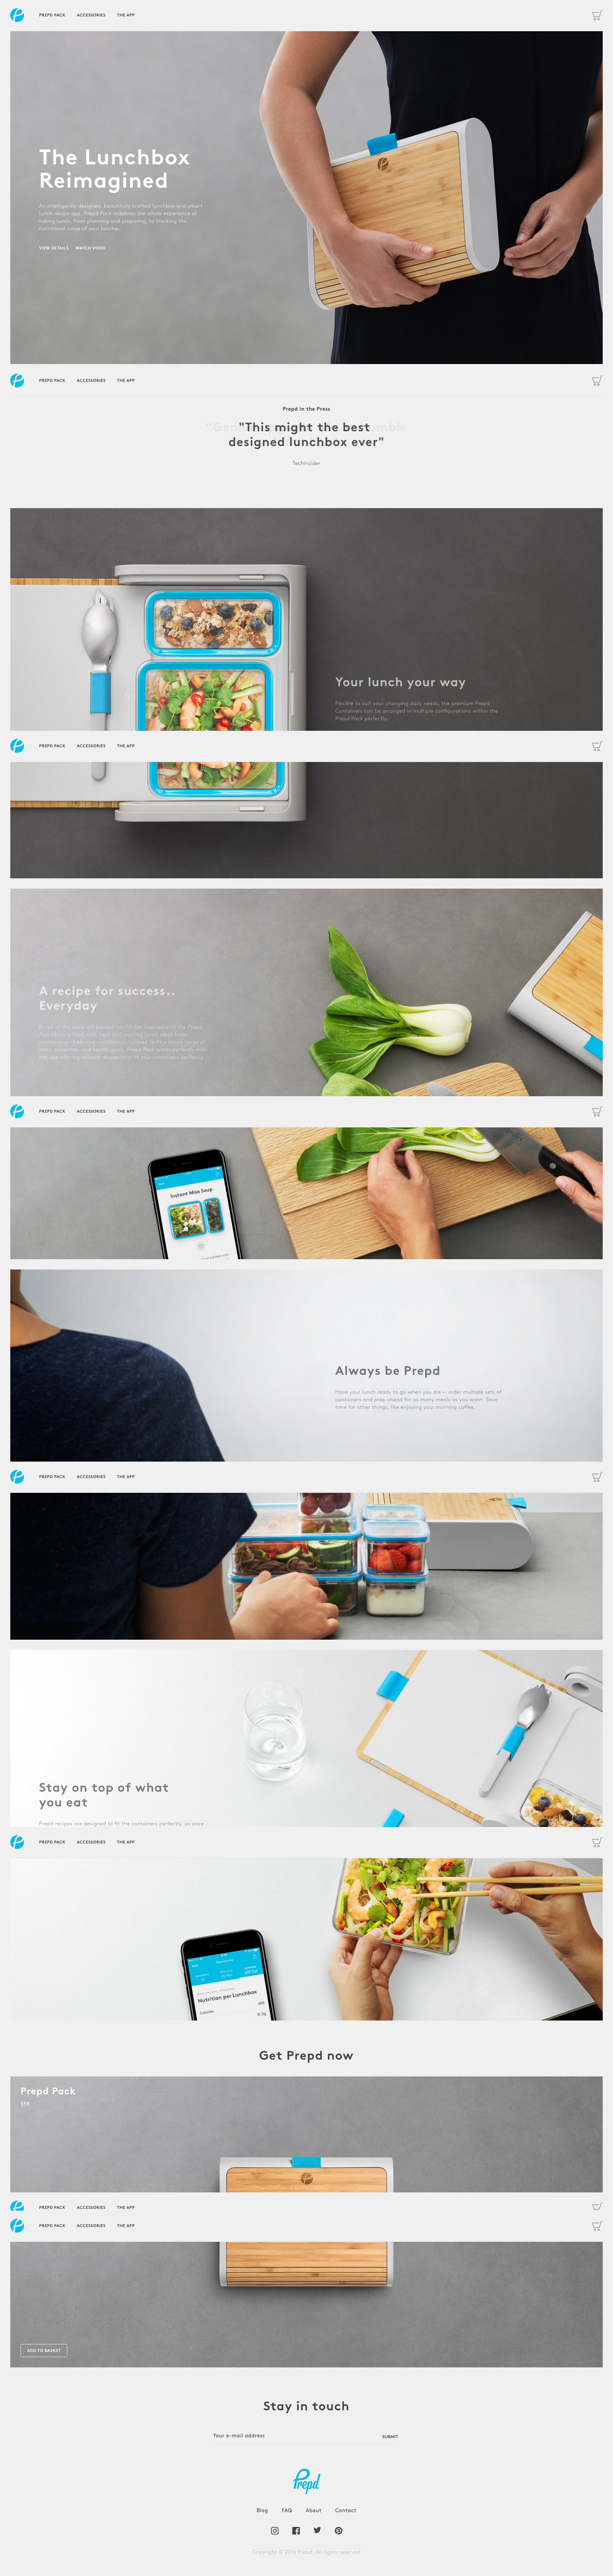 Homepage by Prepd from UIGarage